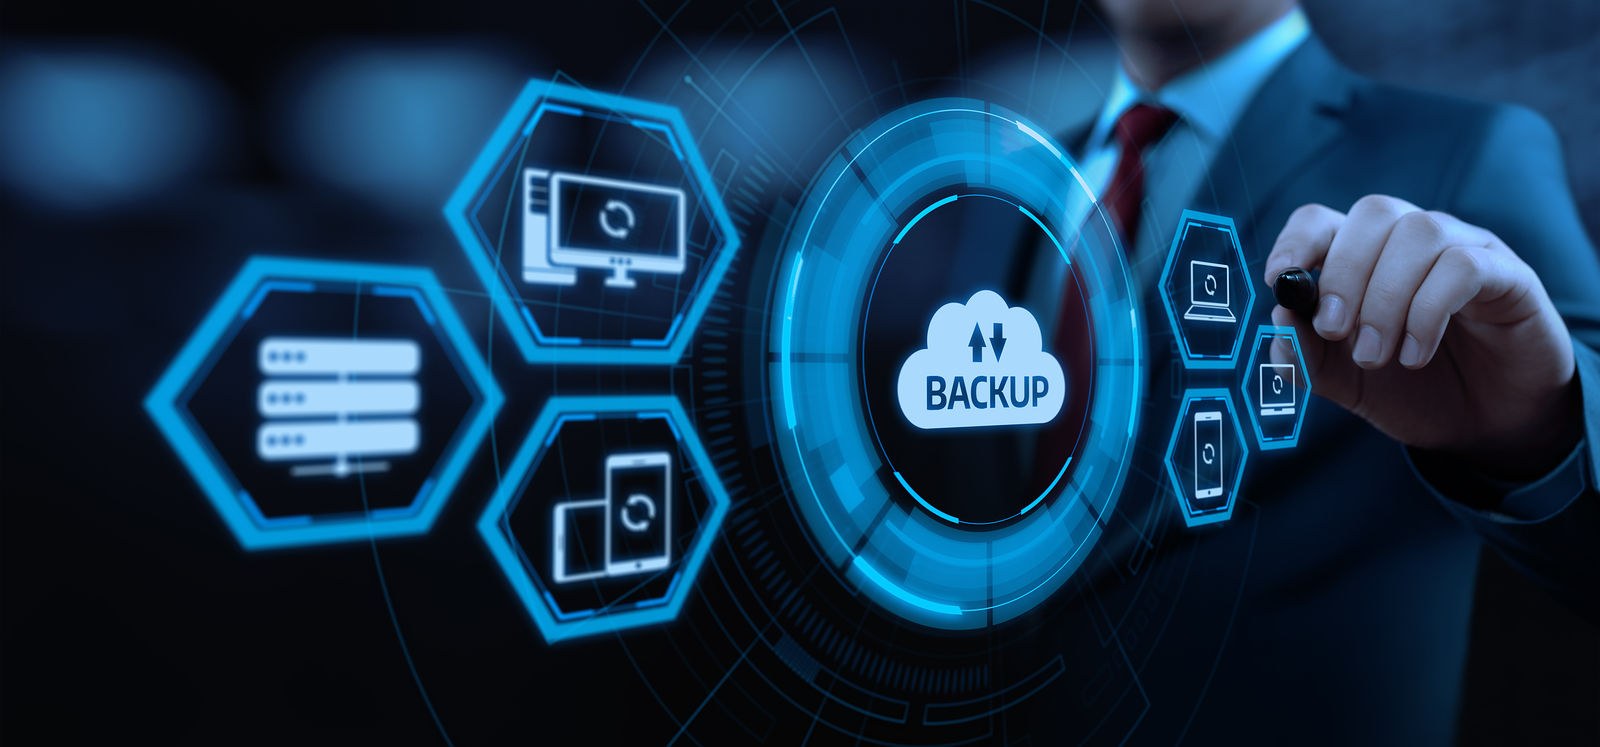 Top 5 Reasons to Backup your Data